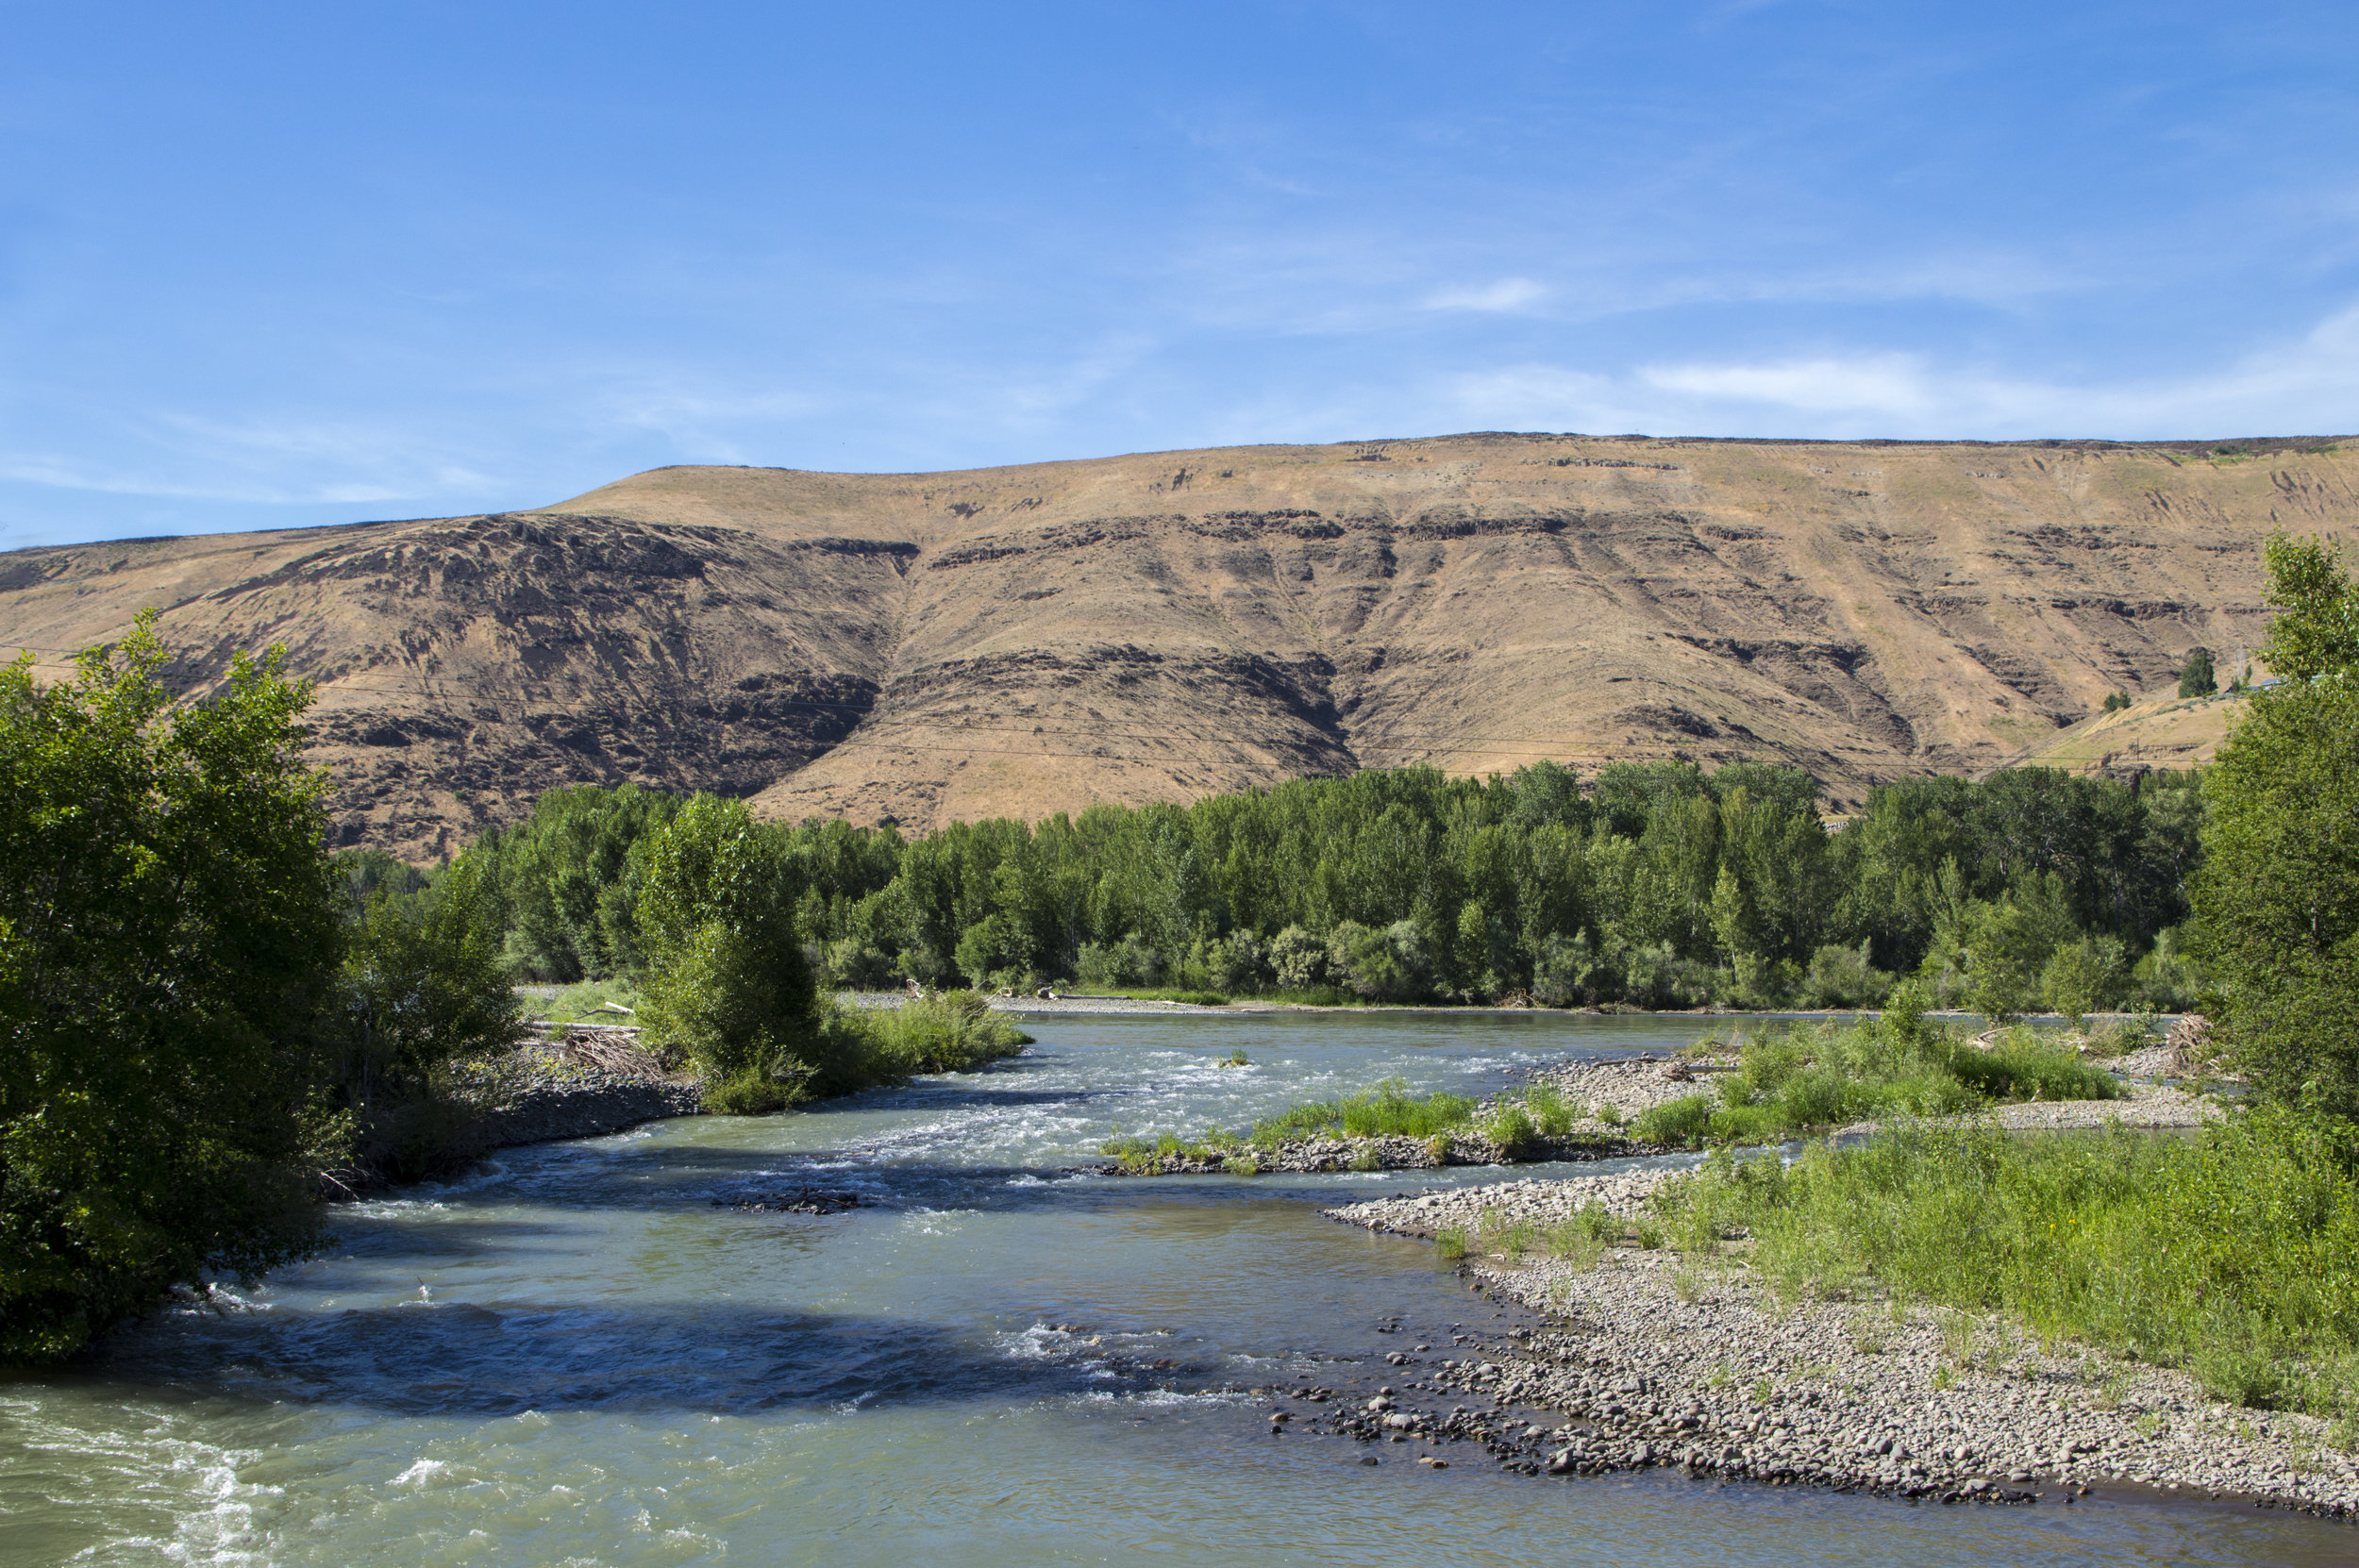 Public Lands Policy & Use -